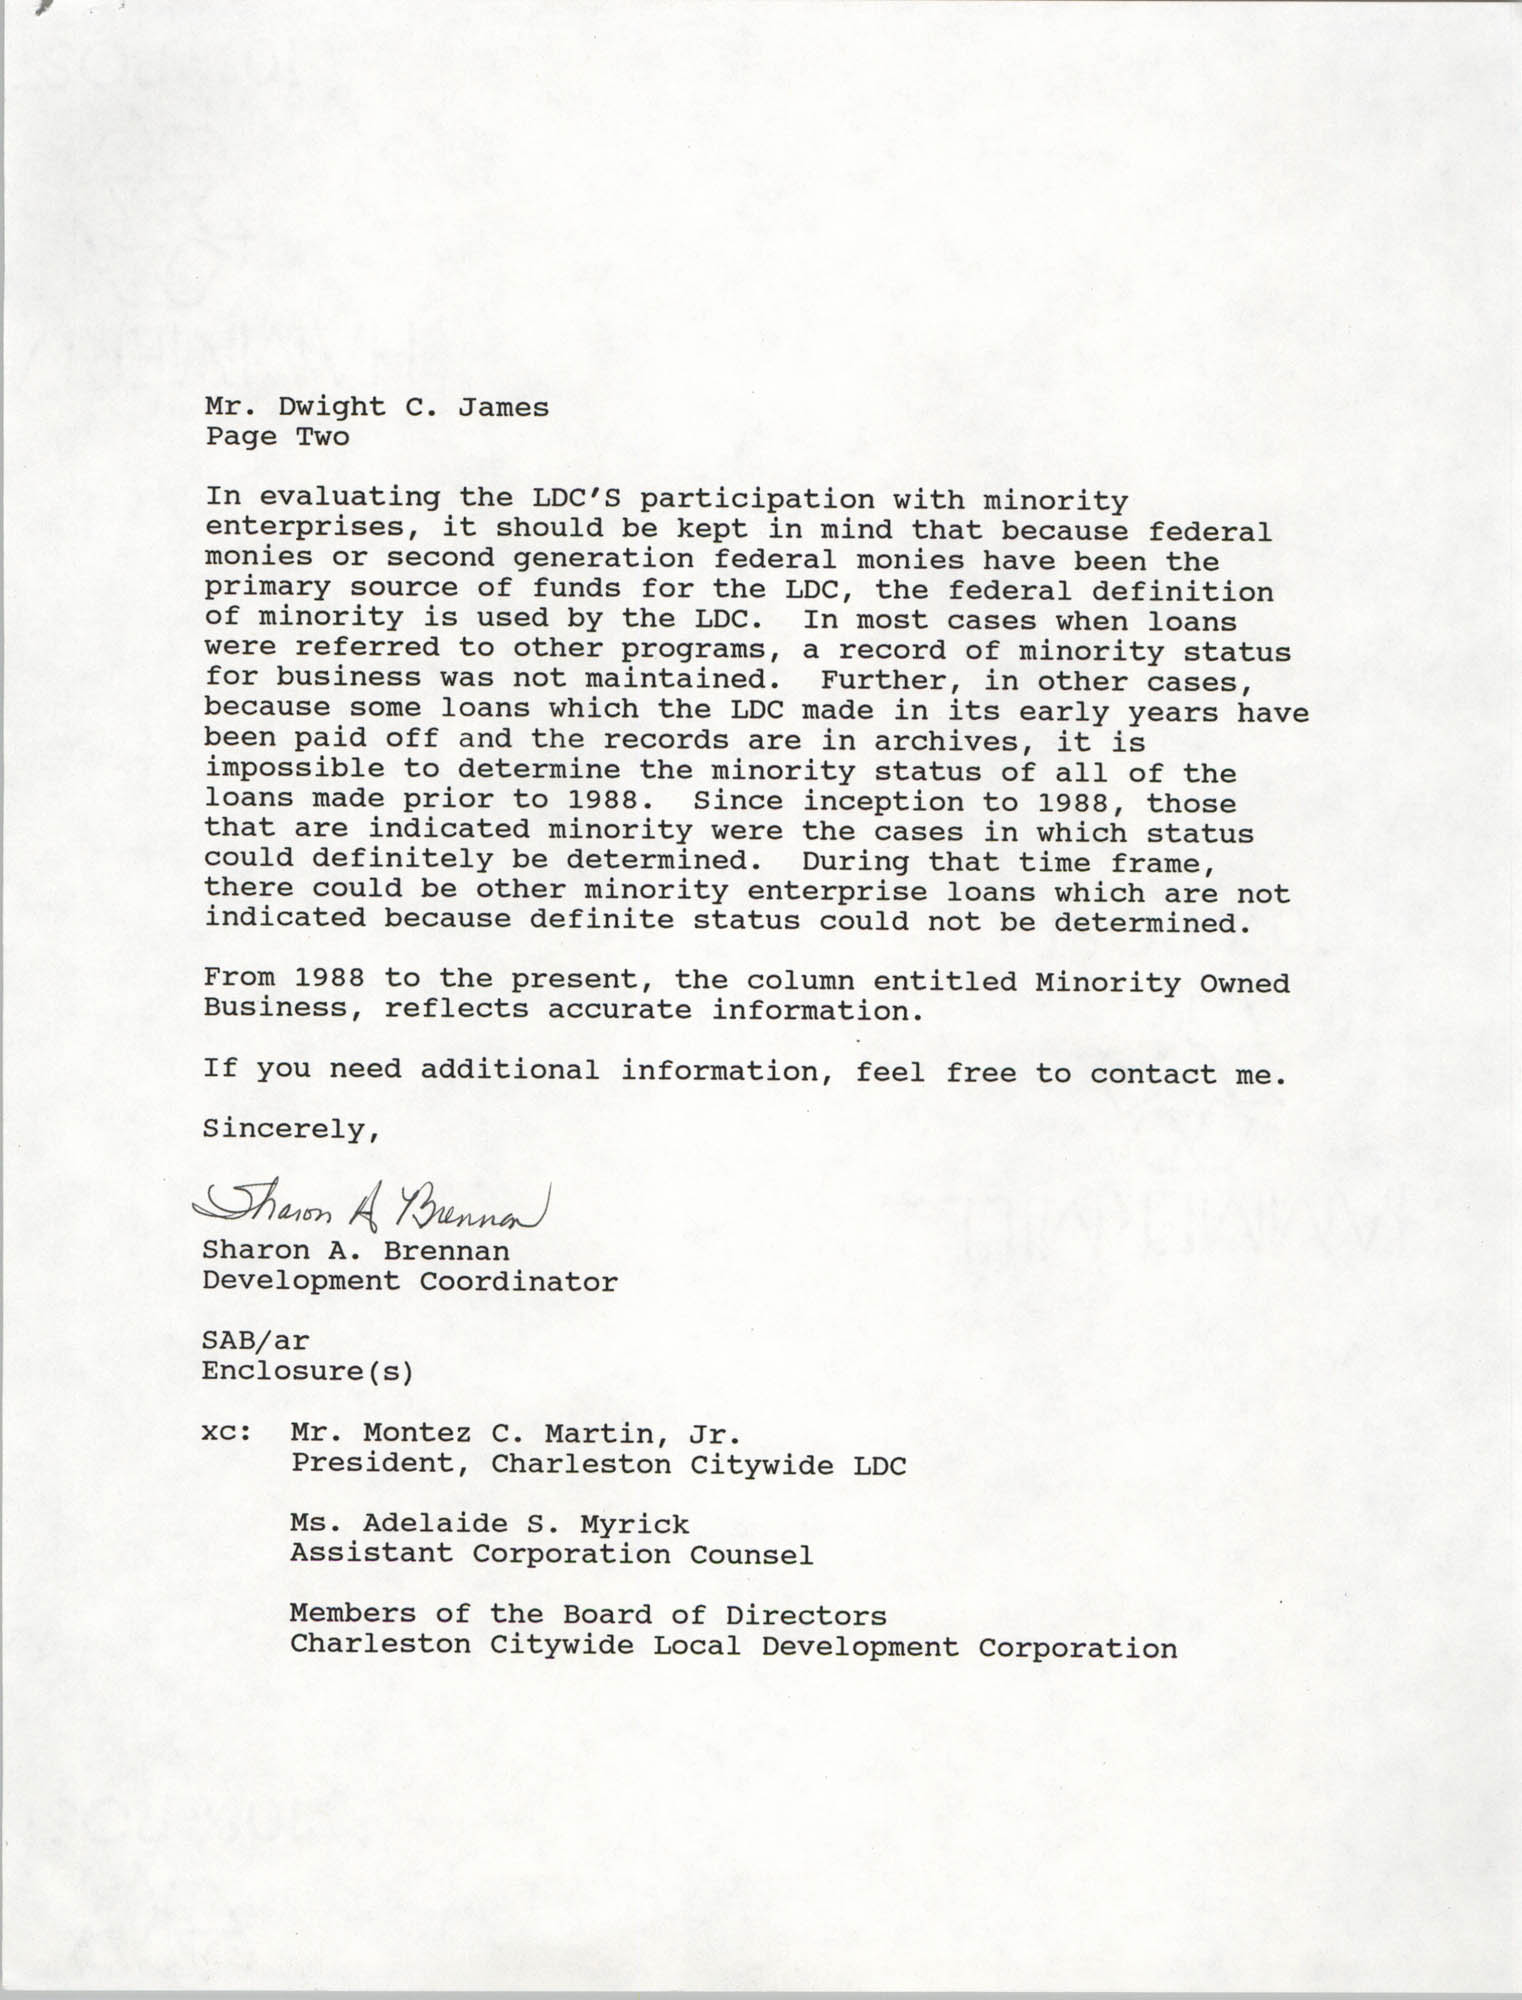 Letter from Sharon A. Brennan to Dwight C. James, June 11, 1993, Page 2